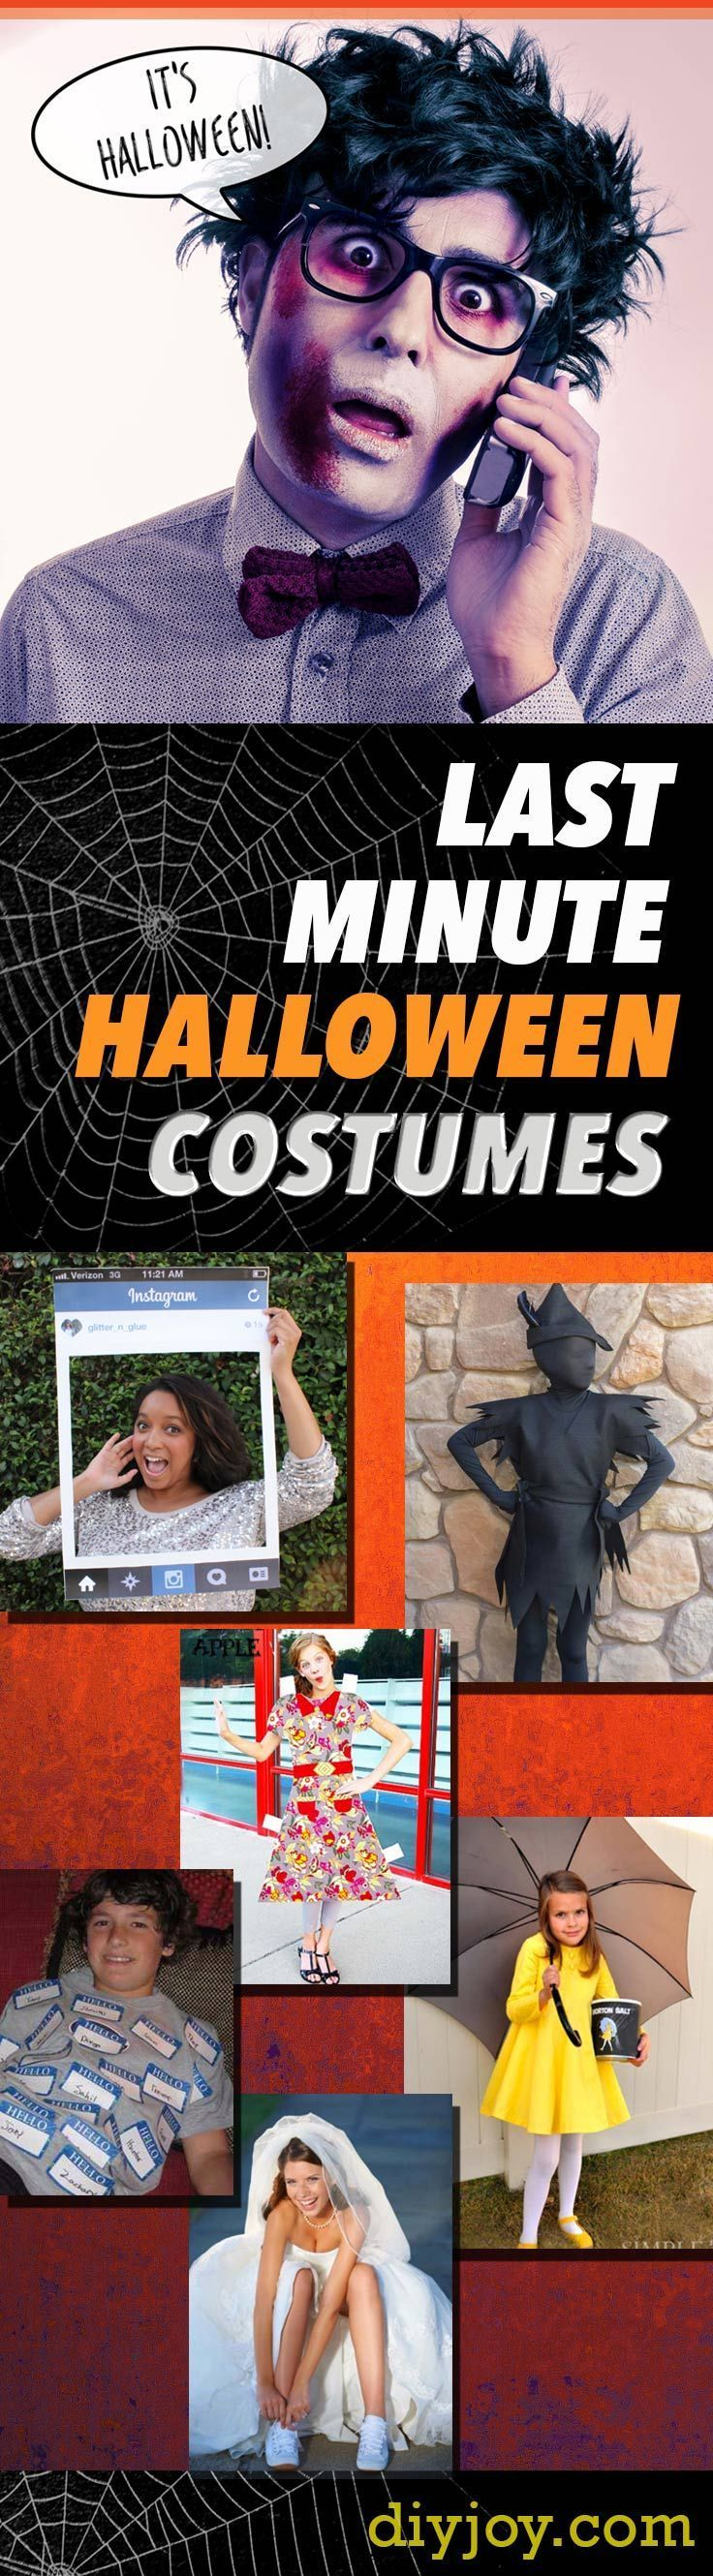 36 last minute diy halloween costumes easy costumes halloween last minute halloween costumes quick diy ideas for couples kids babies adults men and women easy costume ideas with step by step tutorials and solutioingenieria